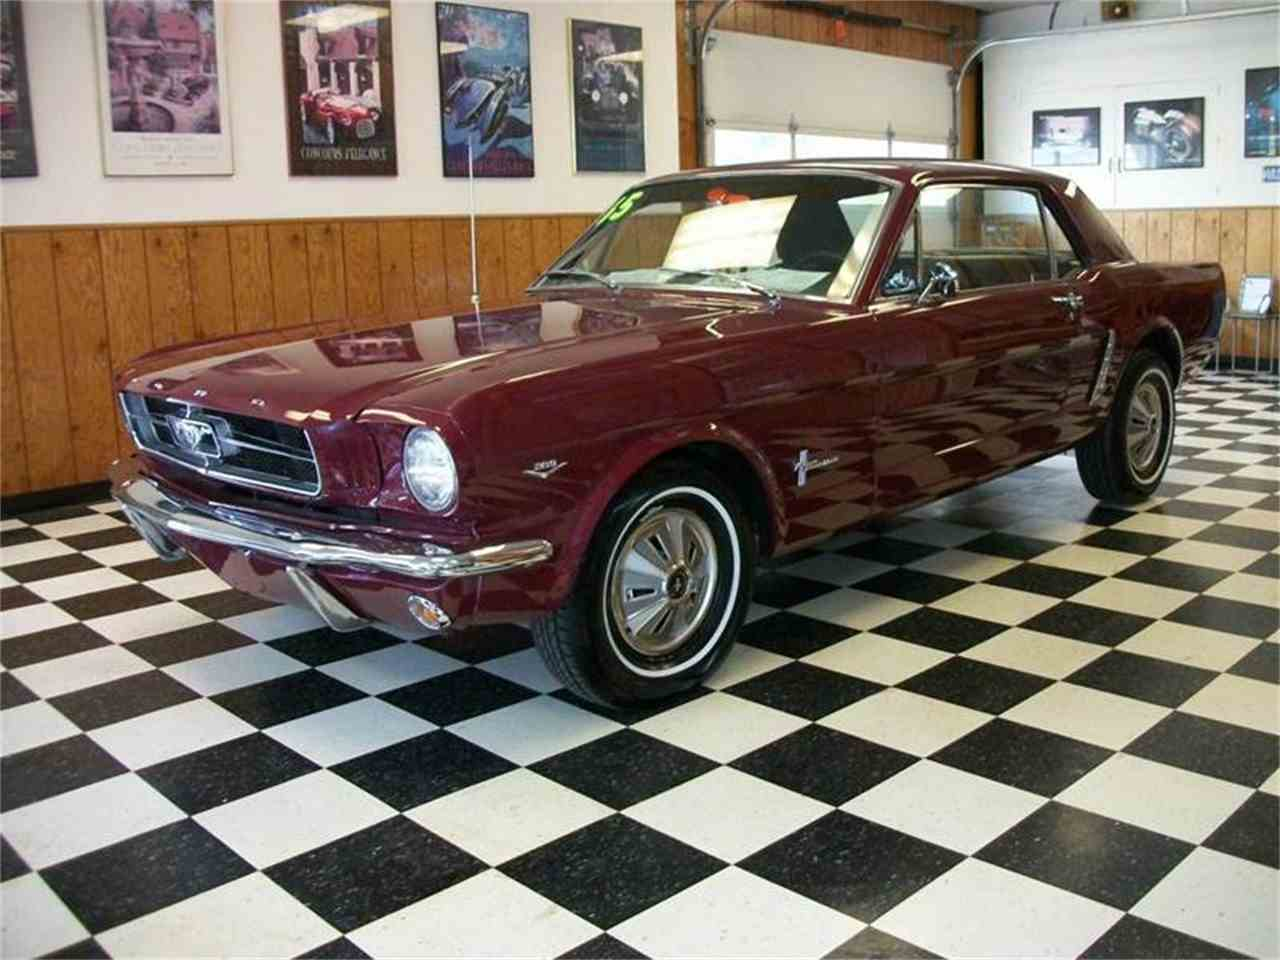 Large Picture of '65 Ford Mustang - $24,995.00 Offered by Yono Brokerage Services, Inc. - LSPY